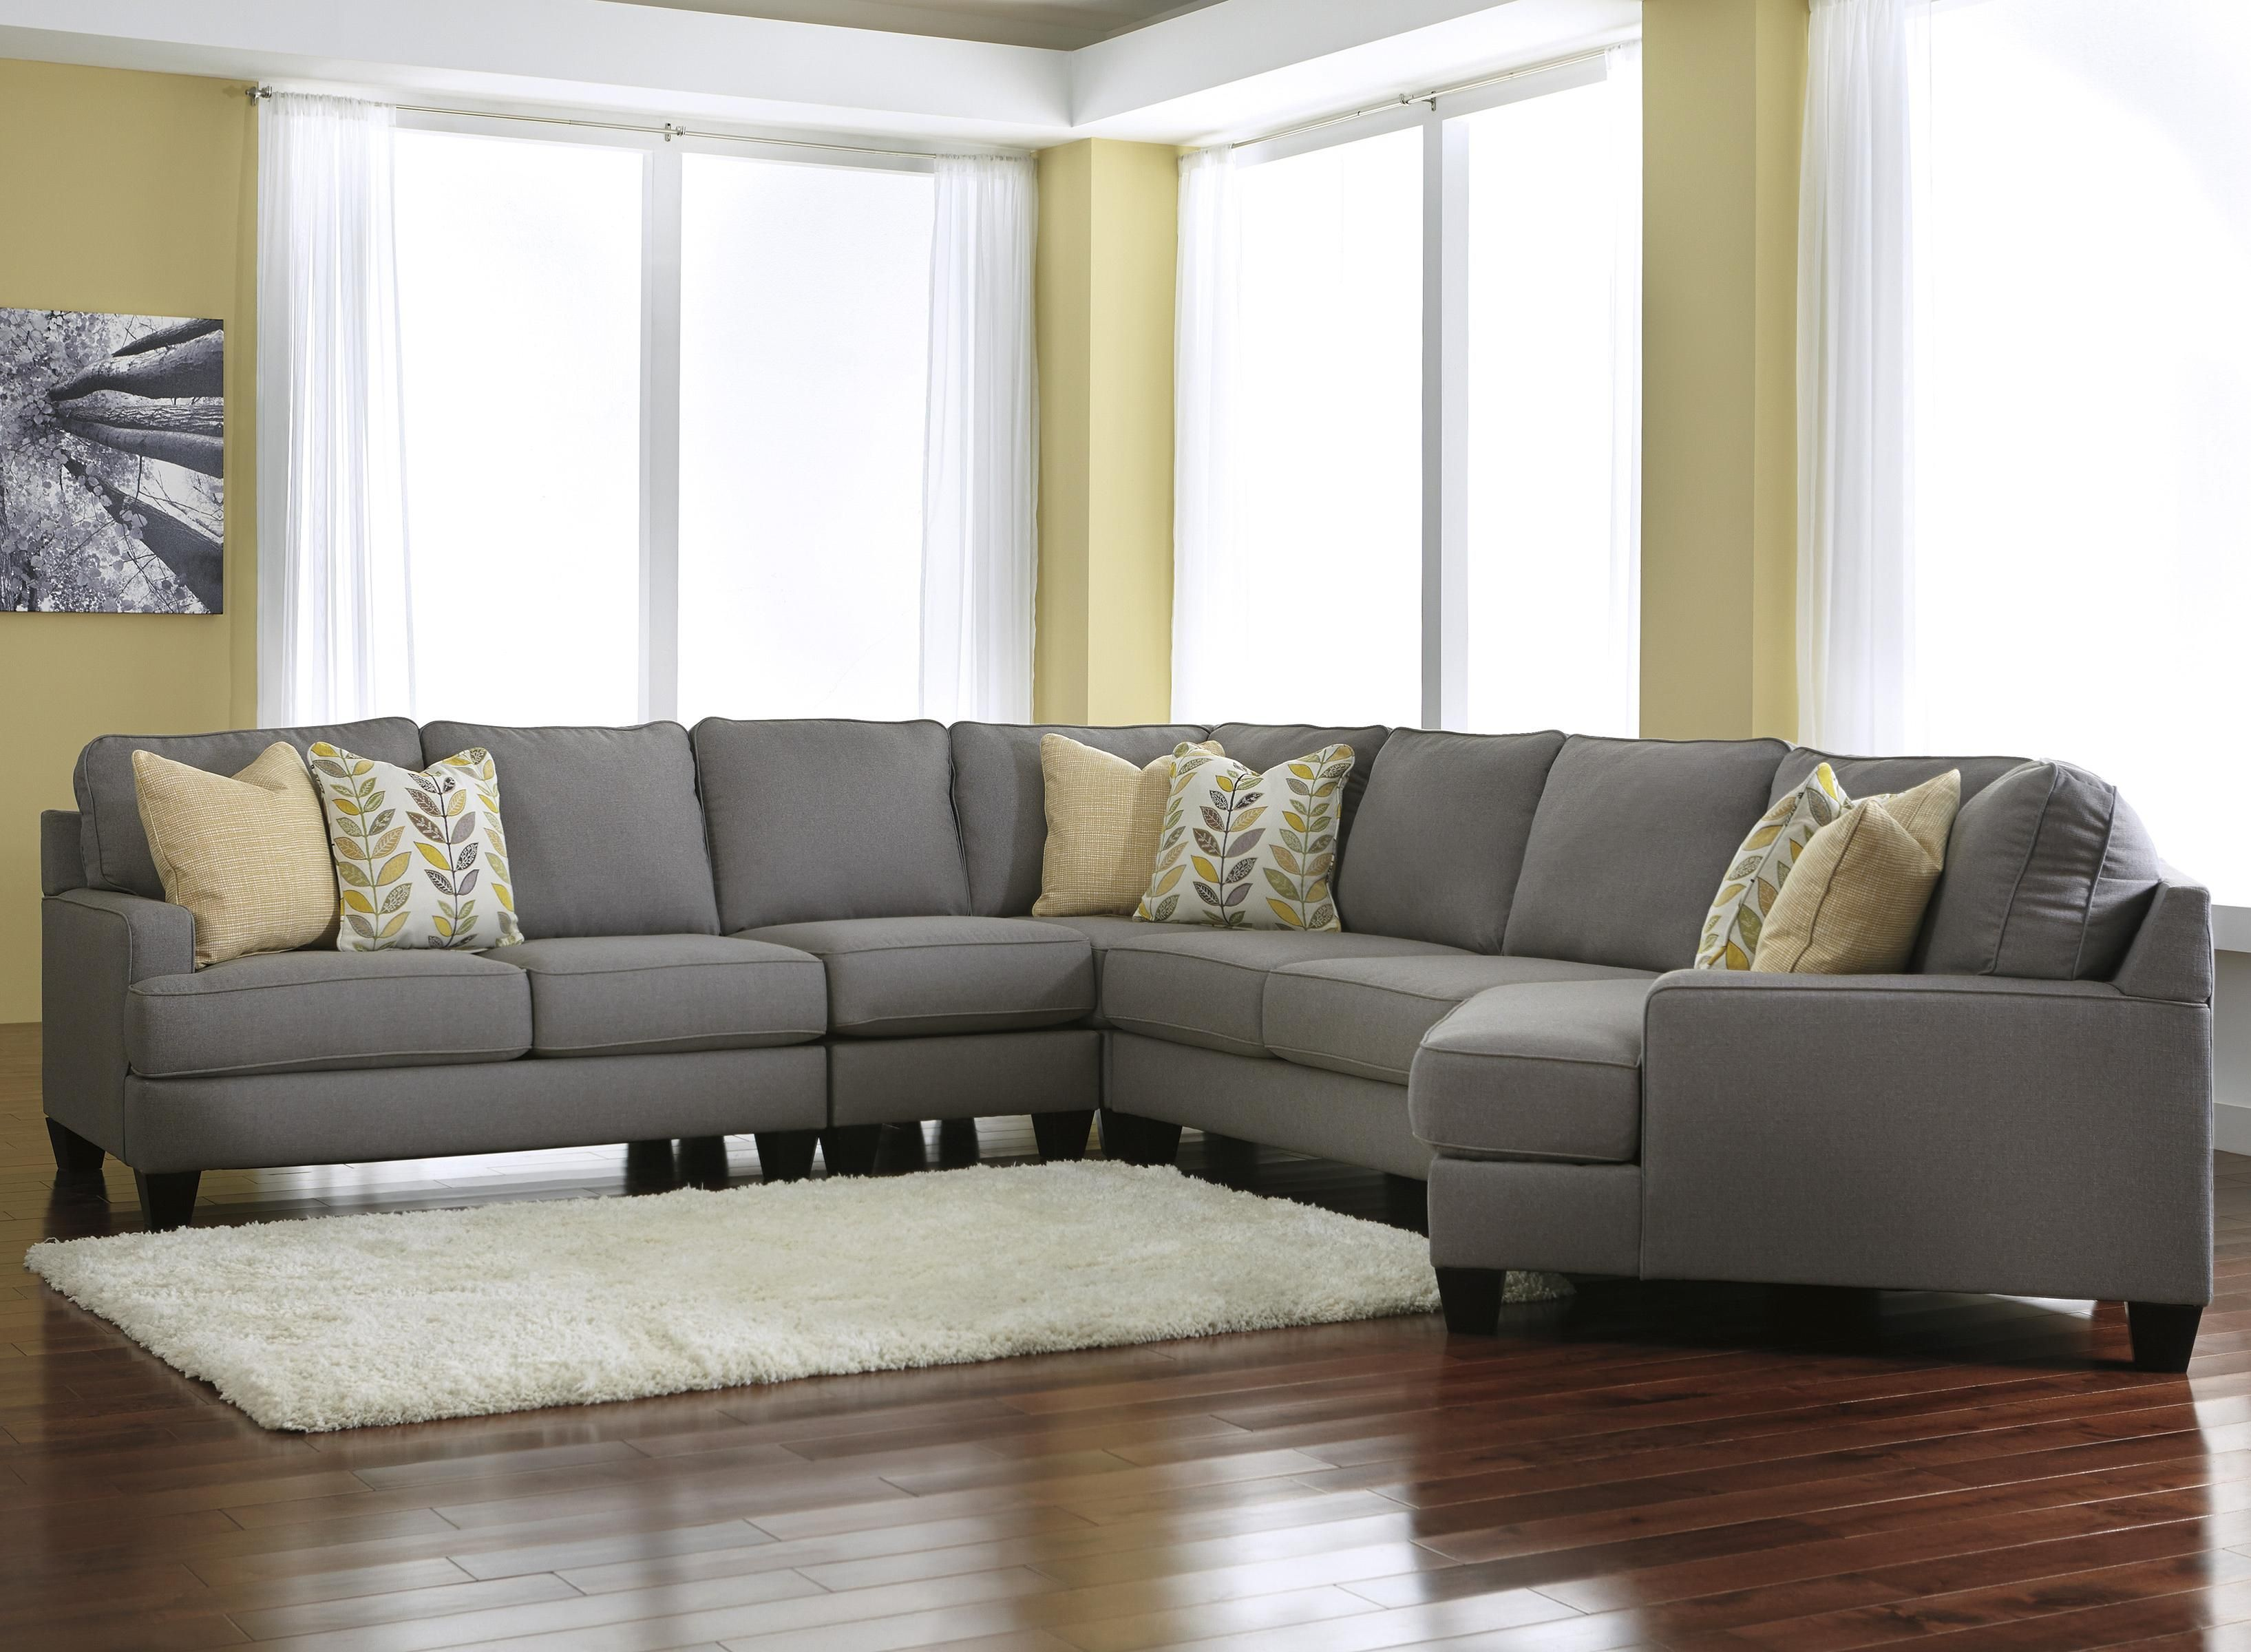 Living Room Designs With Sectionals Chamberly  Alloy Modern 5Piece Sectional Sofa With Right Cuddler